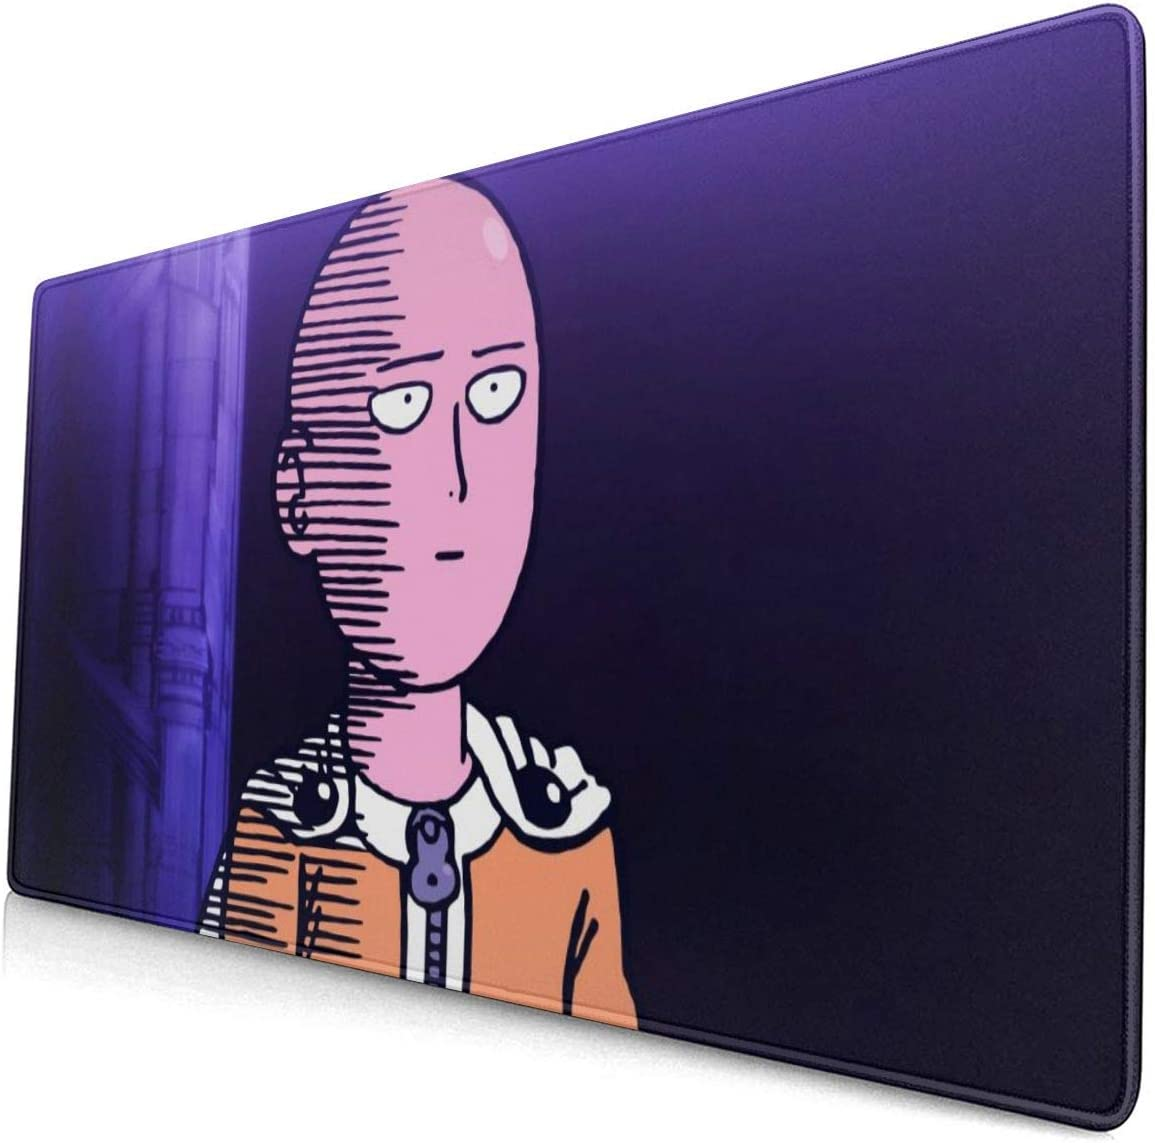 ONE Punch Man Saitama Mouse Pad with Stitched Edge Premium-Textured Mouse Mat Rectangle Non-Slip Rubber Base Oversized Gaming Mousepad,for Laptop Computer /& PC 15.8X29.5 Inches